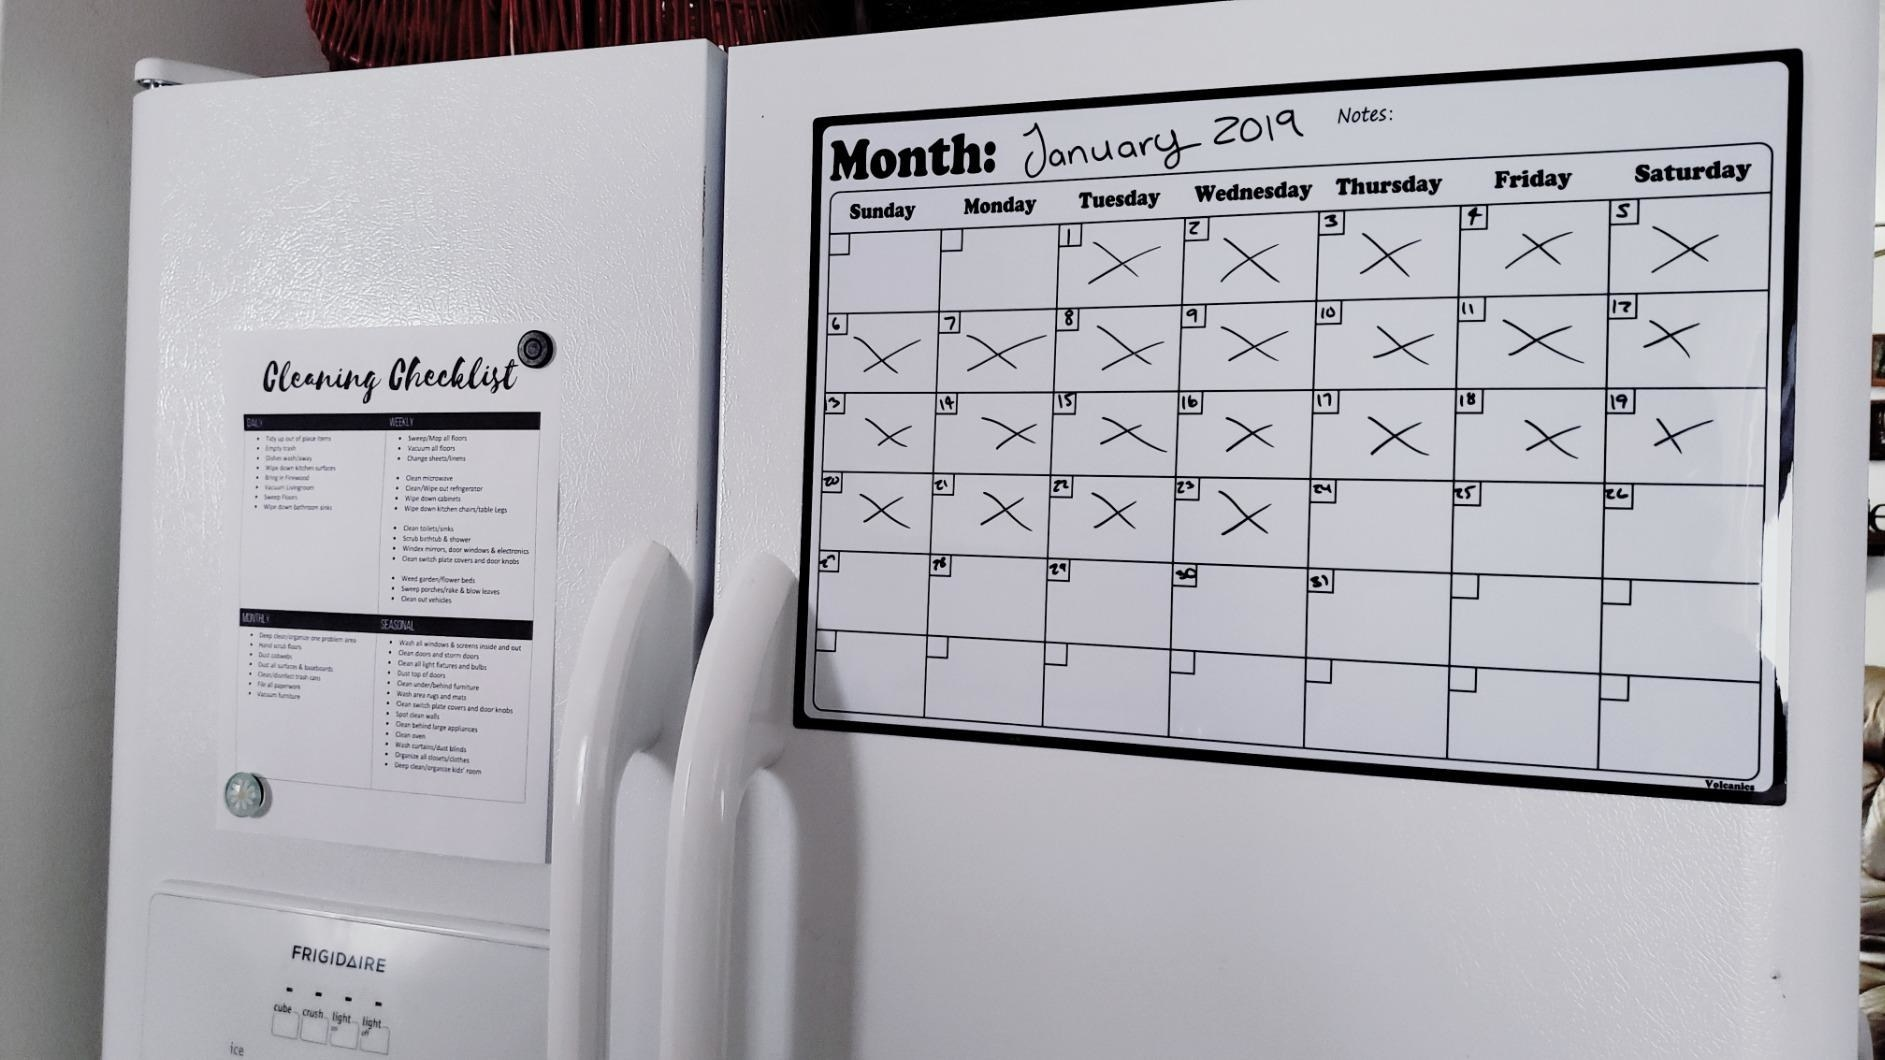 reviewer image of the dry erase calendar on a customer's fridge